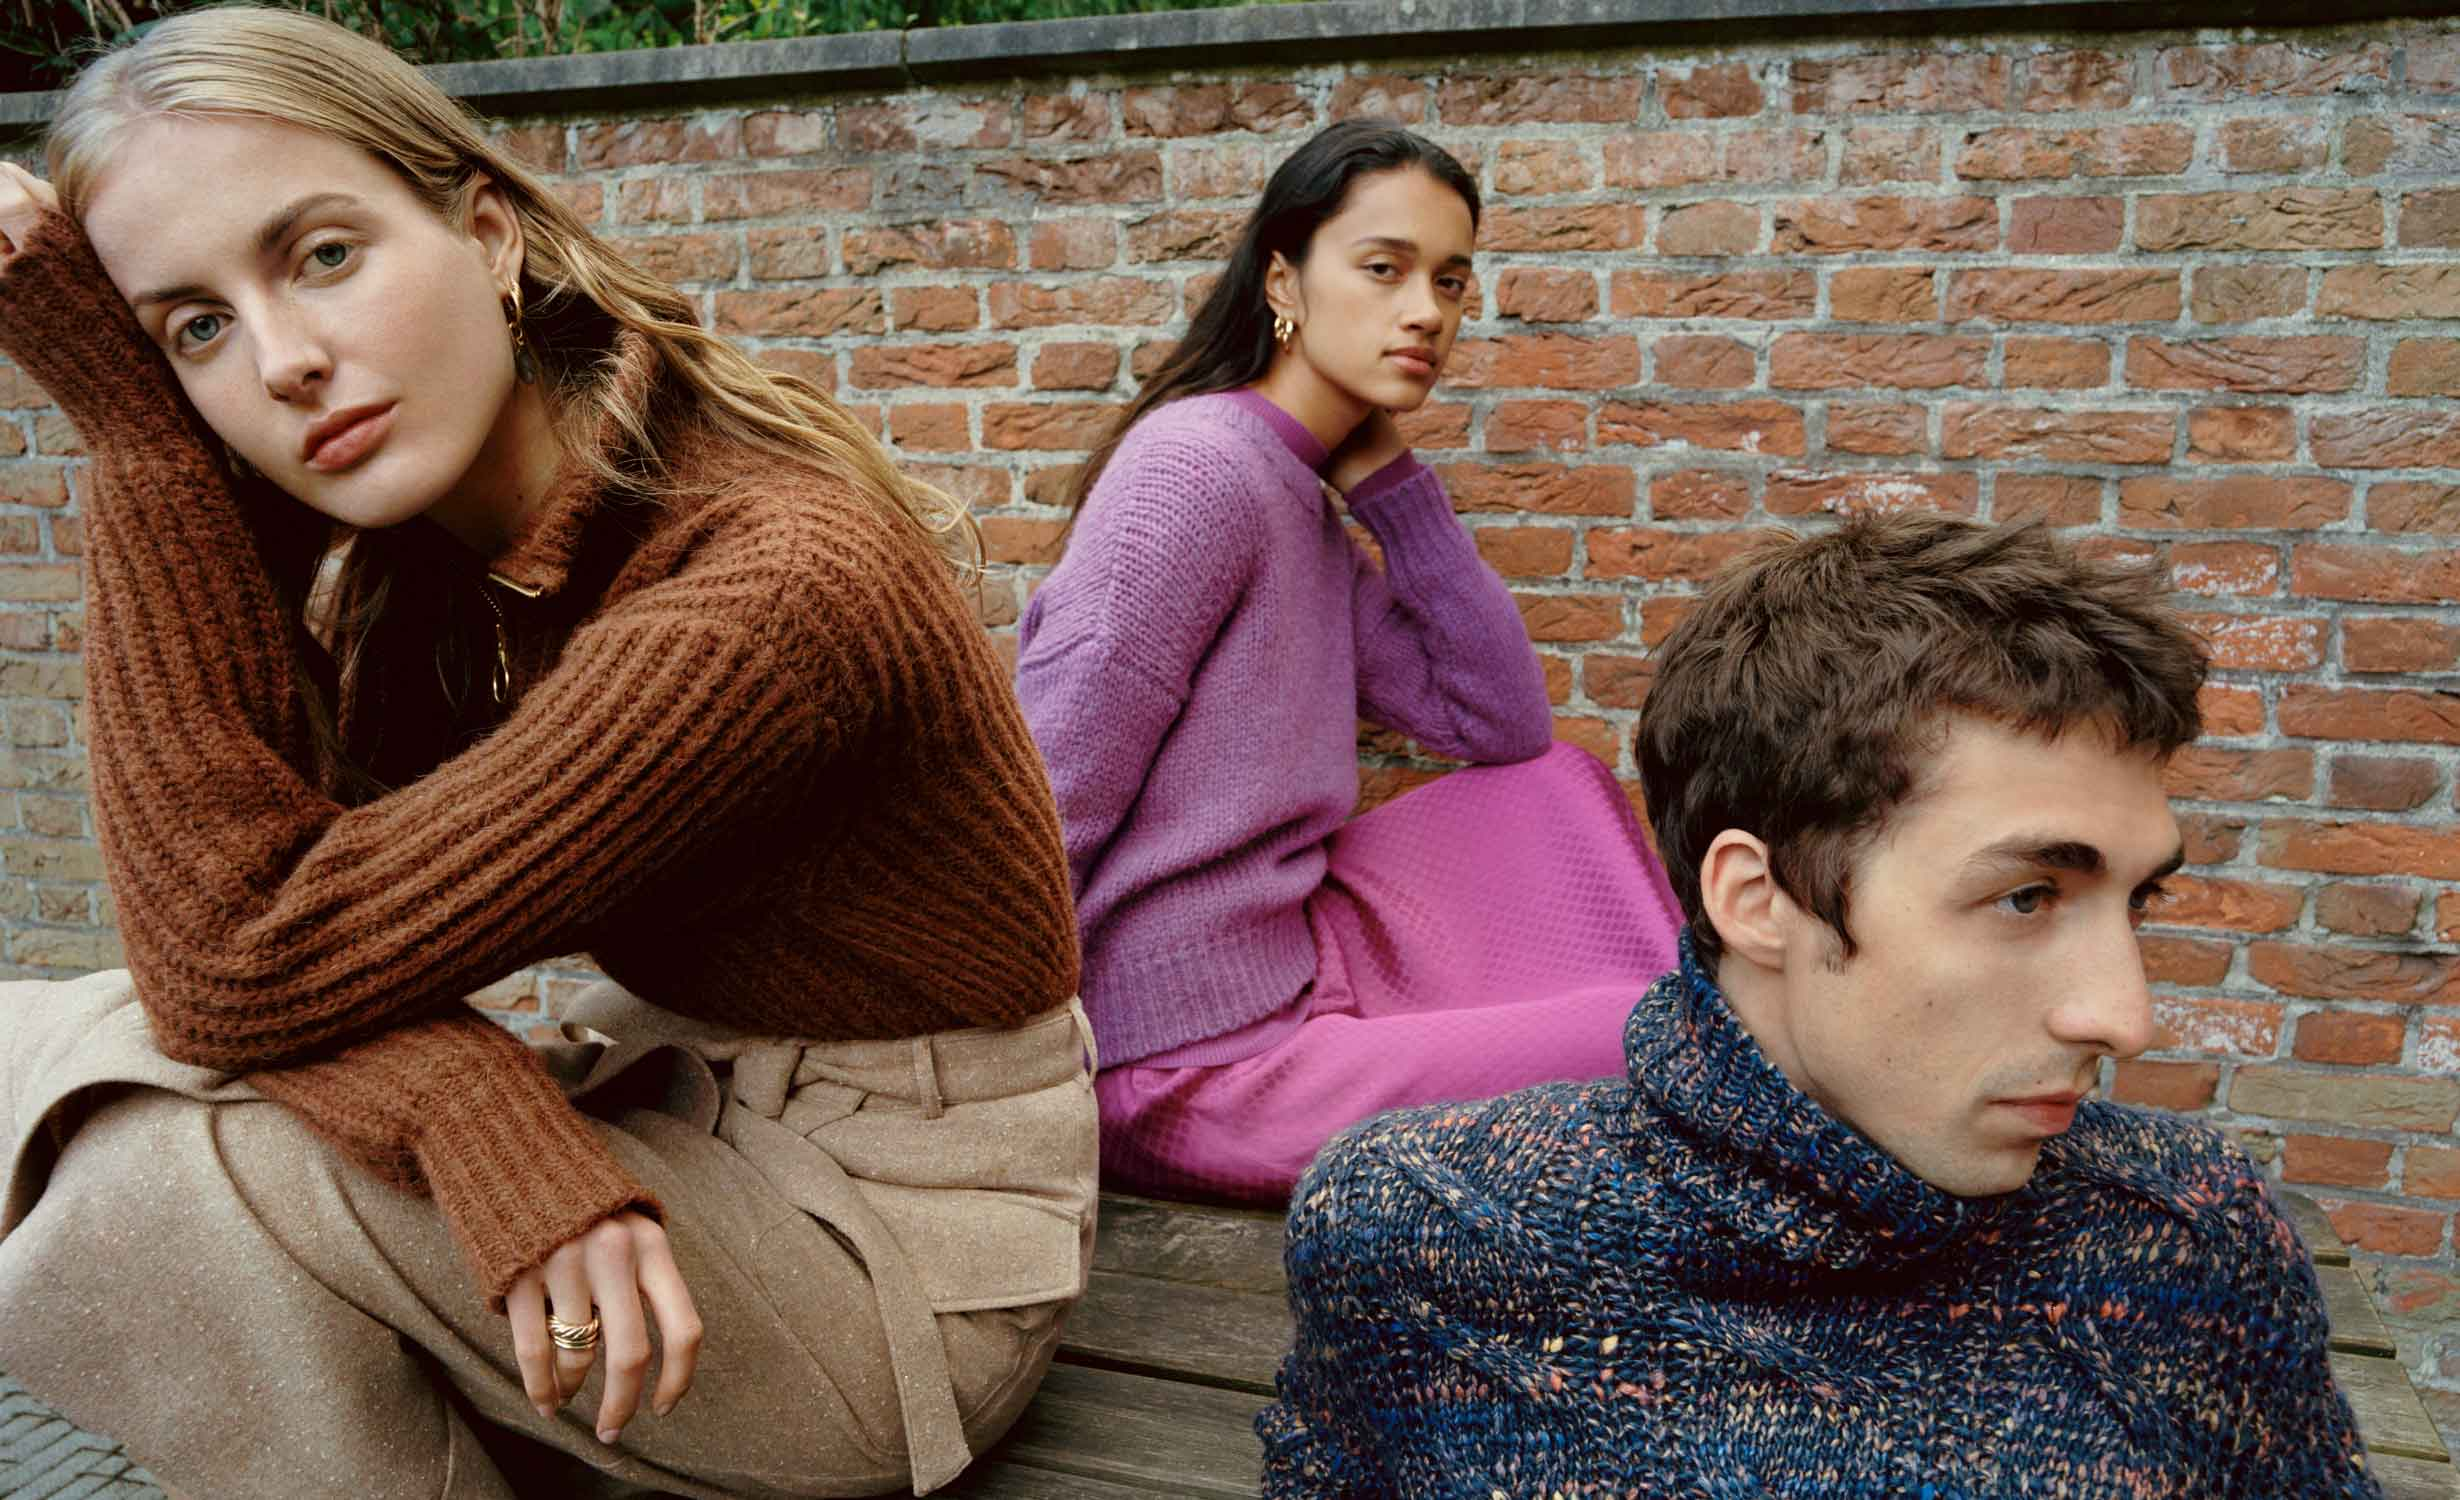 Knitwear adults